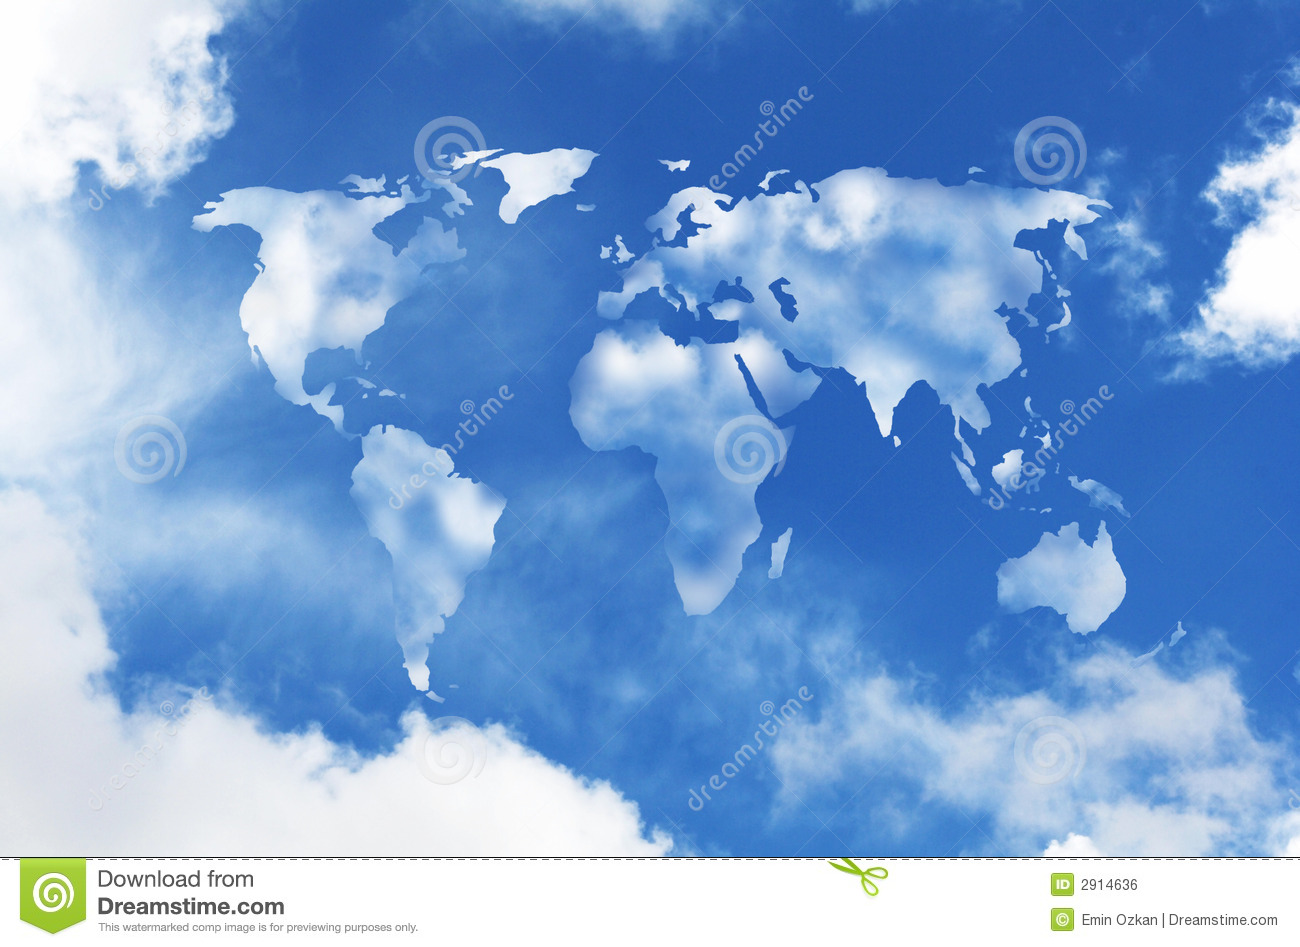 World of clouds